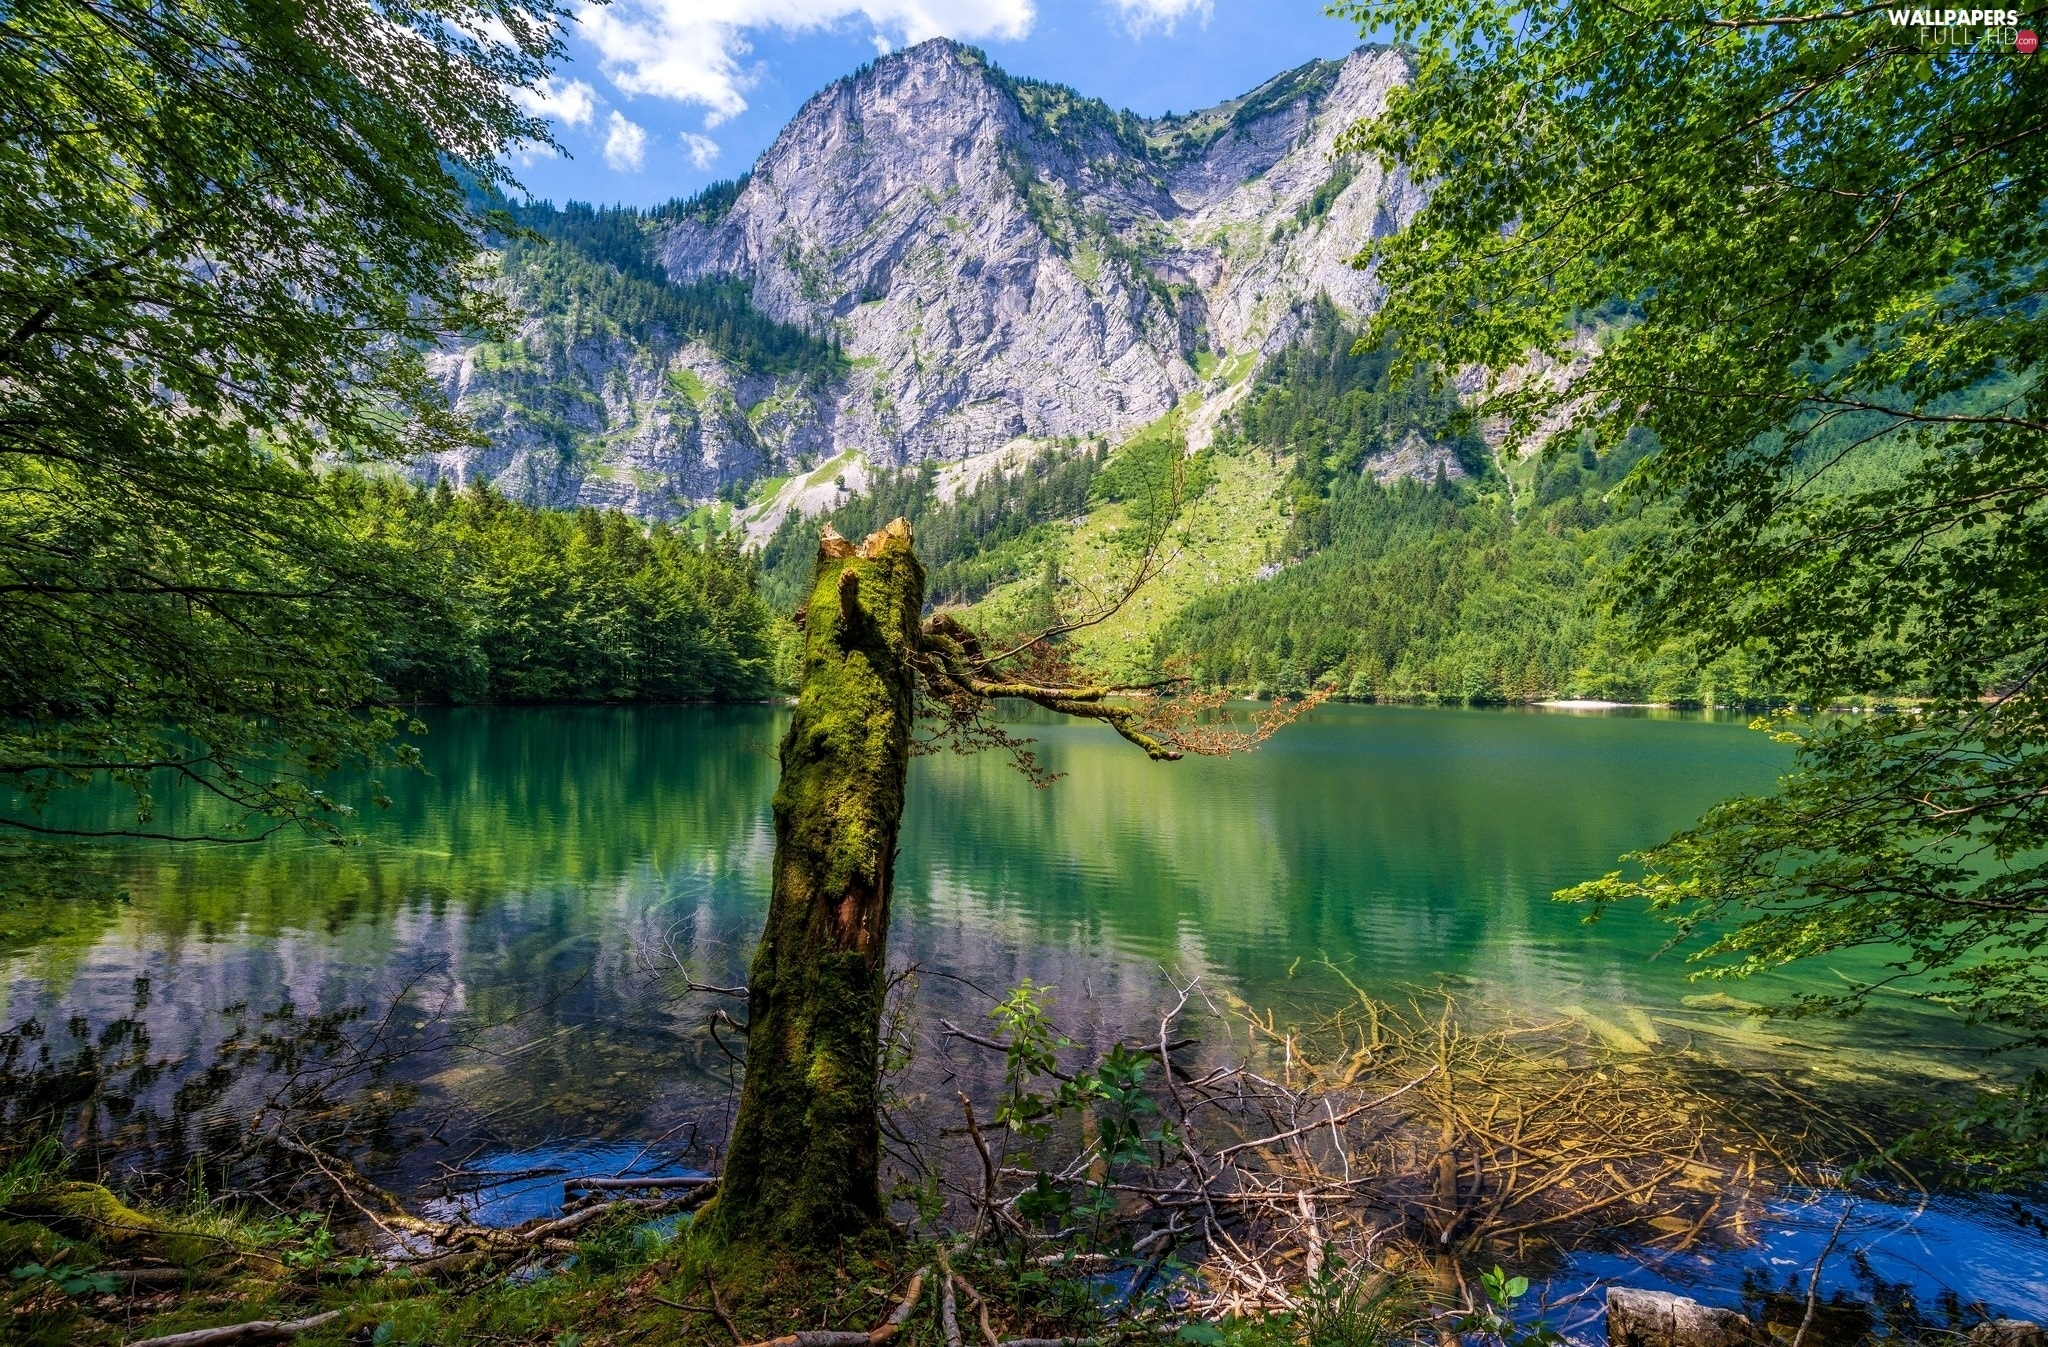 viewes, trees, Mountains, lake